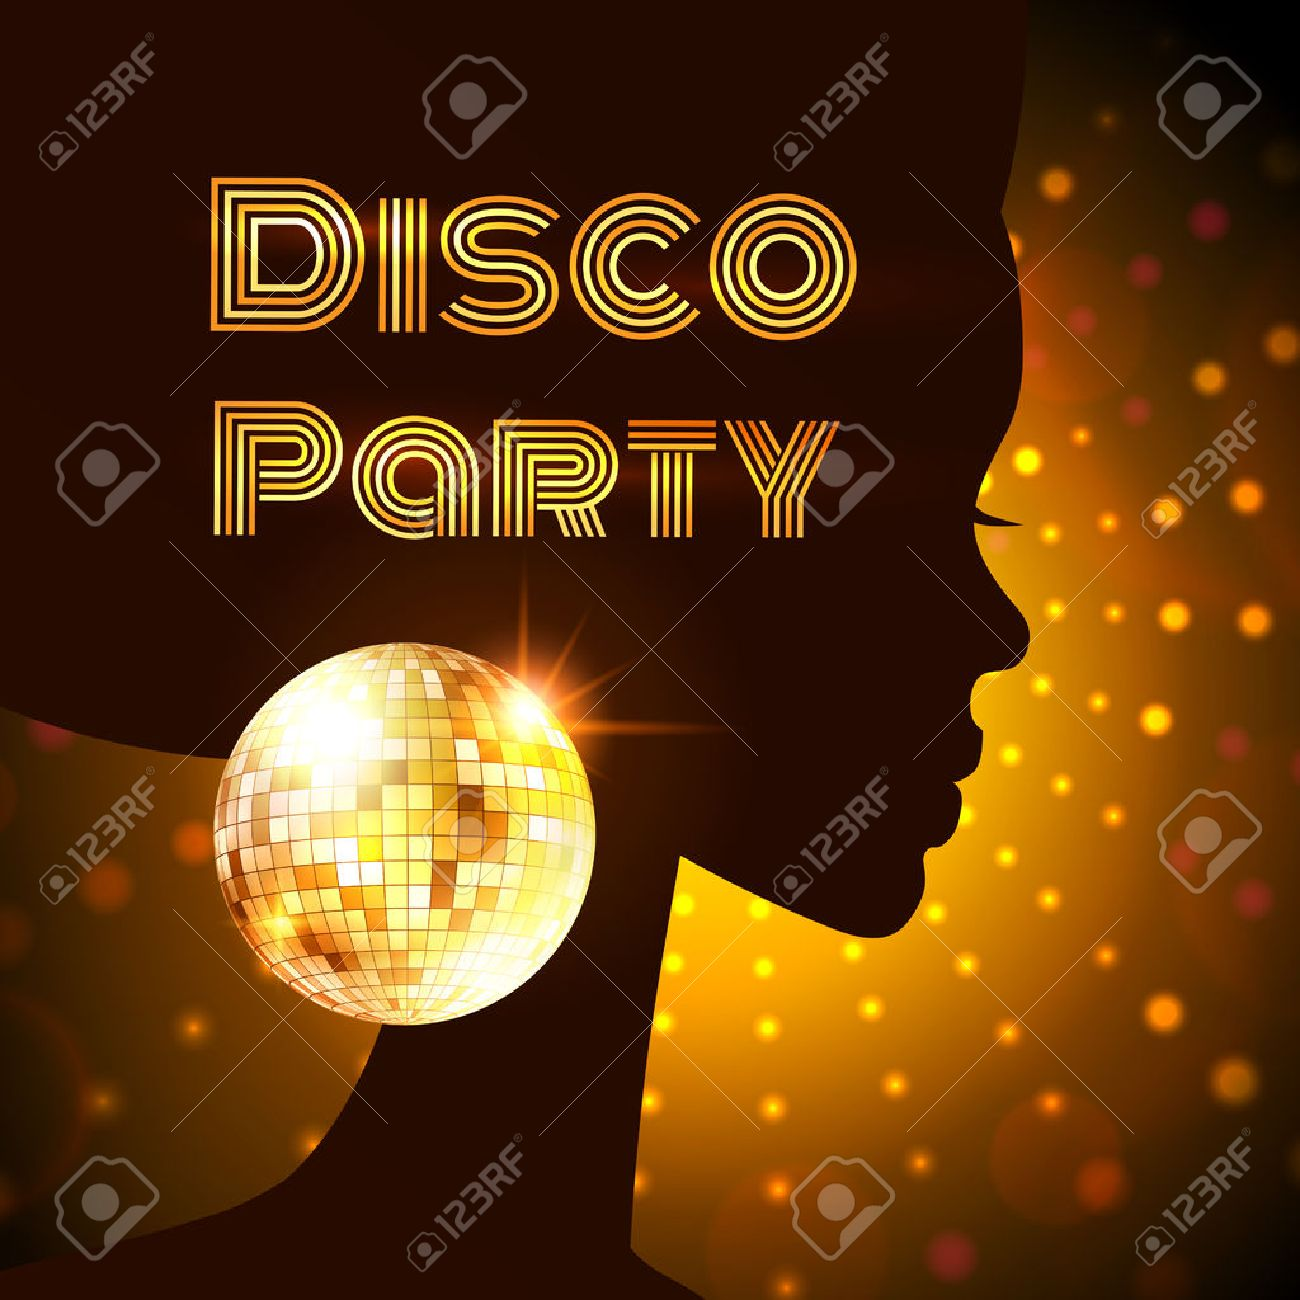 Disco Party Invitation Template With Silhouette Of A Girl. Royalty ...